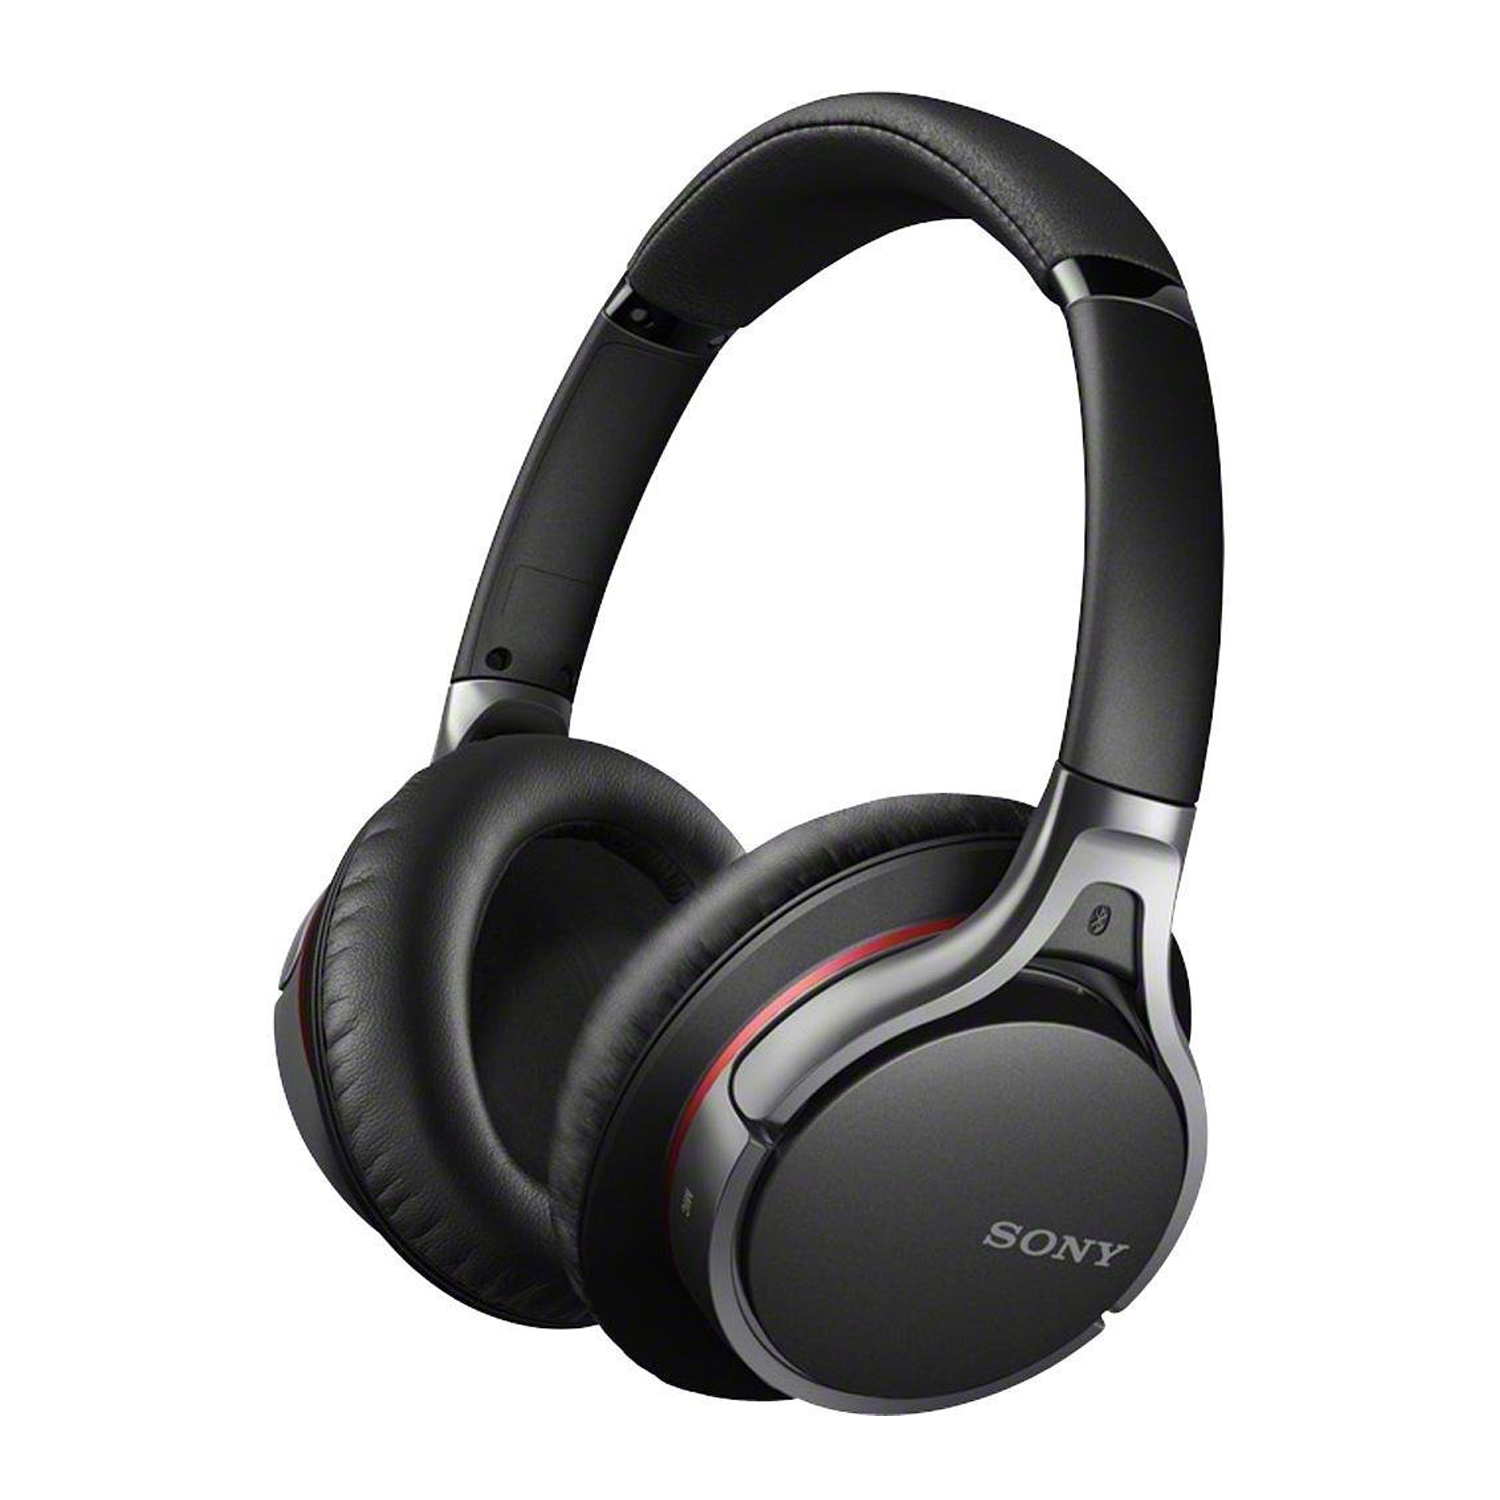 sony mdr10rbt wireless headphones for tv review wireless headphones. Black Bedroom Furniture Sets. Home Design Ideas